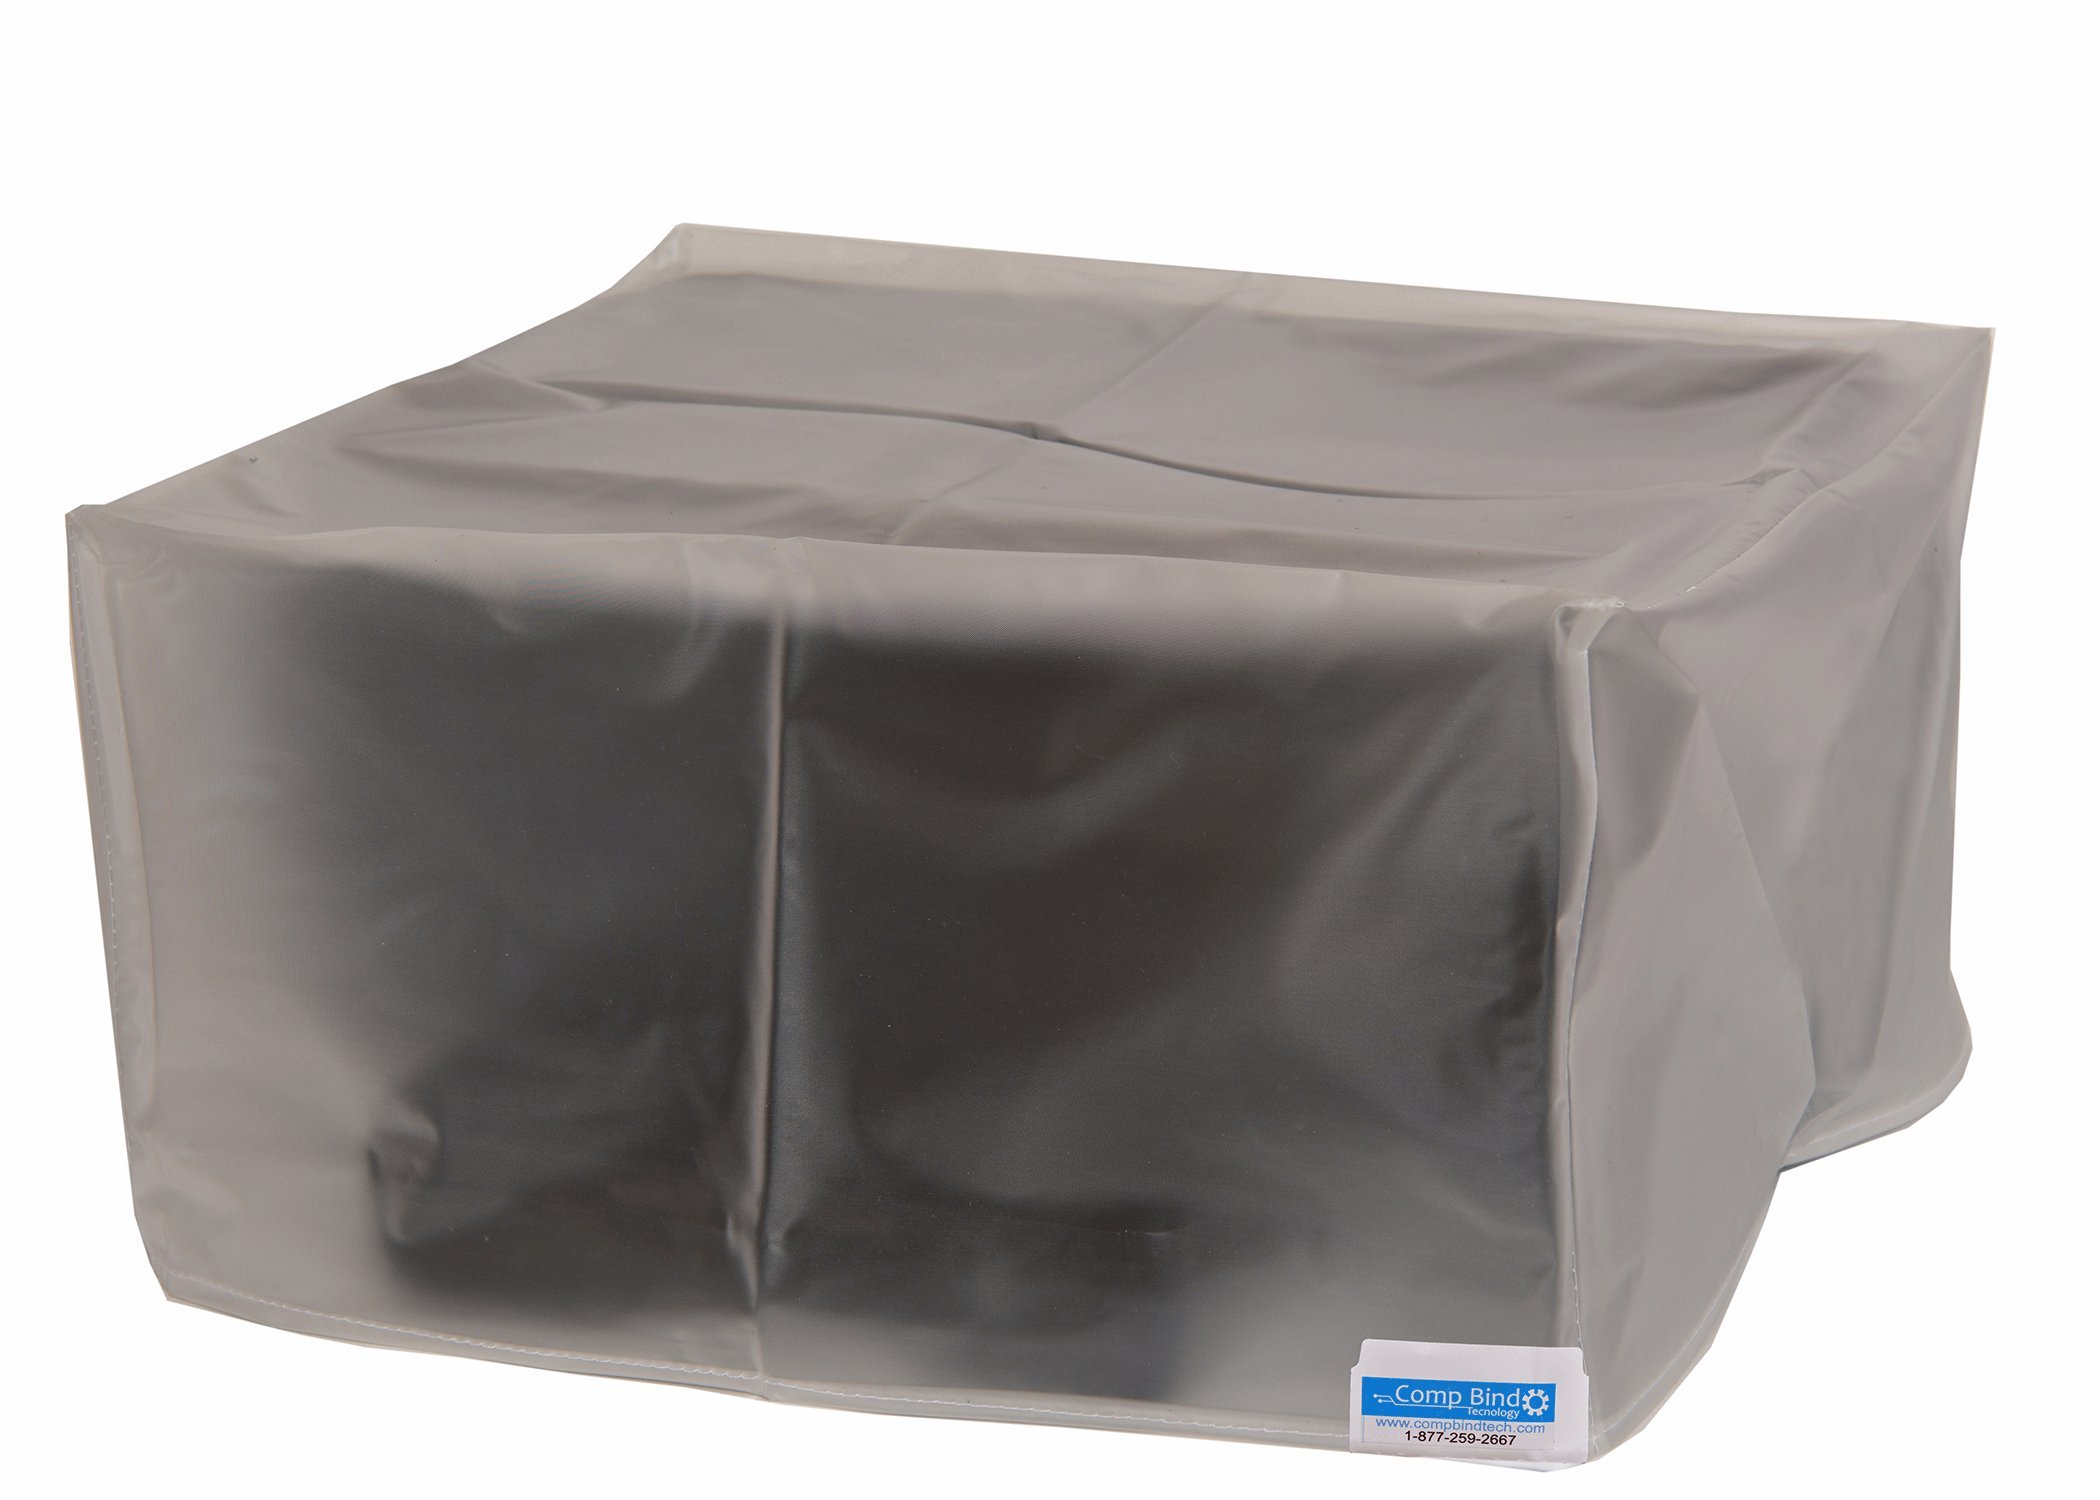 Comp Bind Technology Dust Cover for HP Deskjet 3755 All-in-One Printer, Clear Vinyl Dust Cover Dimensions 15.9''W x 7''D x 5.5''H